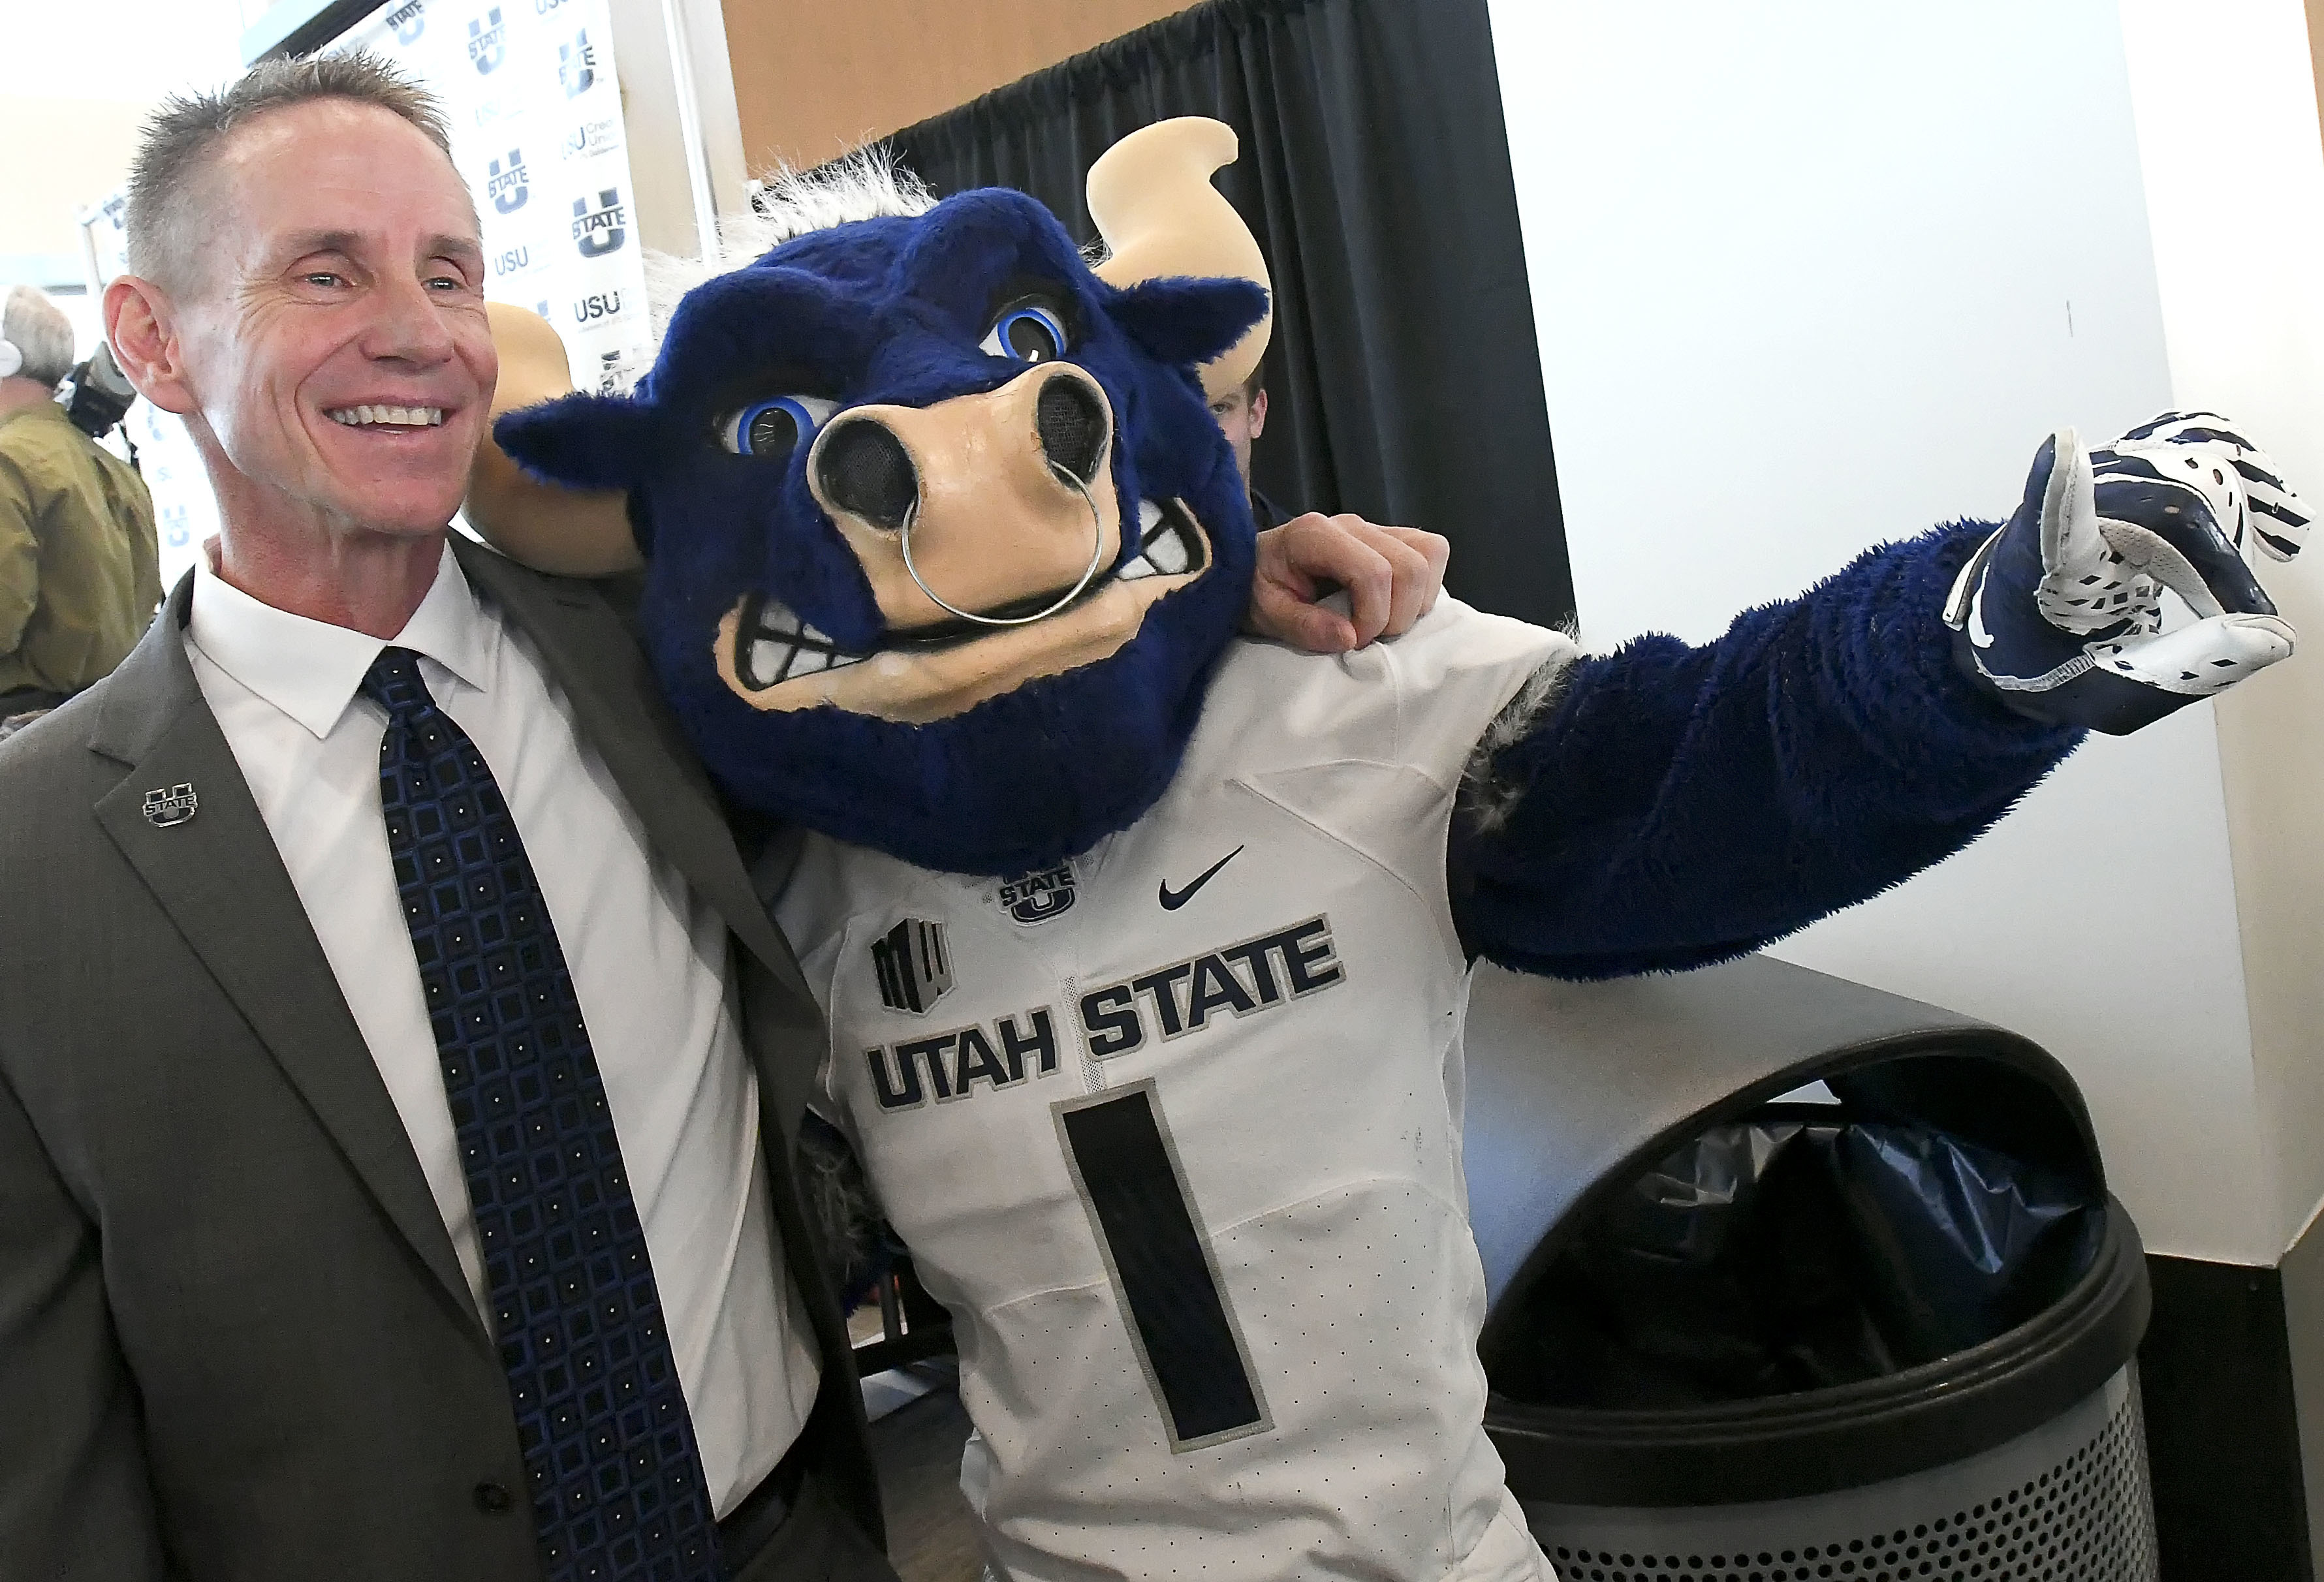 Gary Andersen poses for a photo with Big Blue after speaking at a press conference where he was introduced as the new head football coach at Utah State, Tuesday, Dec. 11, 2018, in Logan, Utah. (Eli Lucero/The Herald Journal via AP)